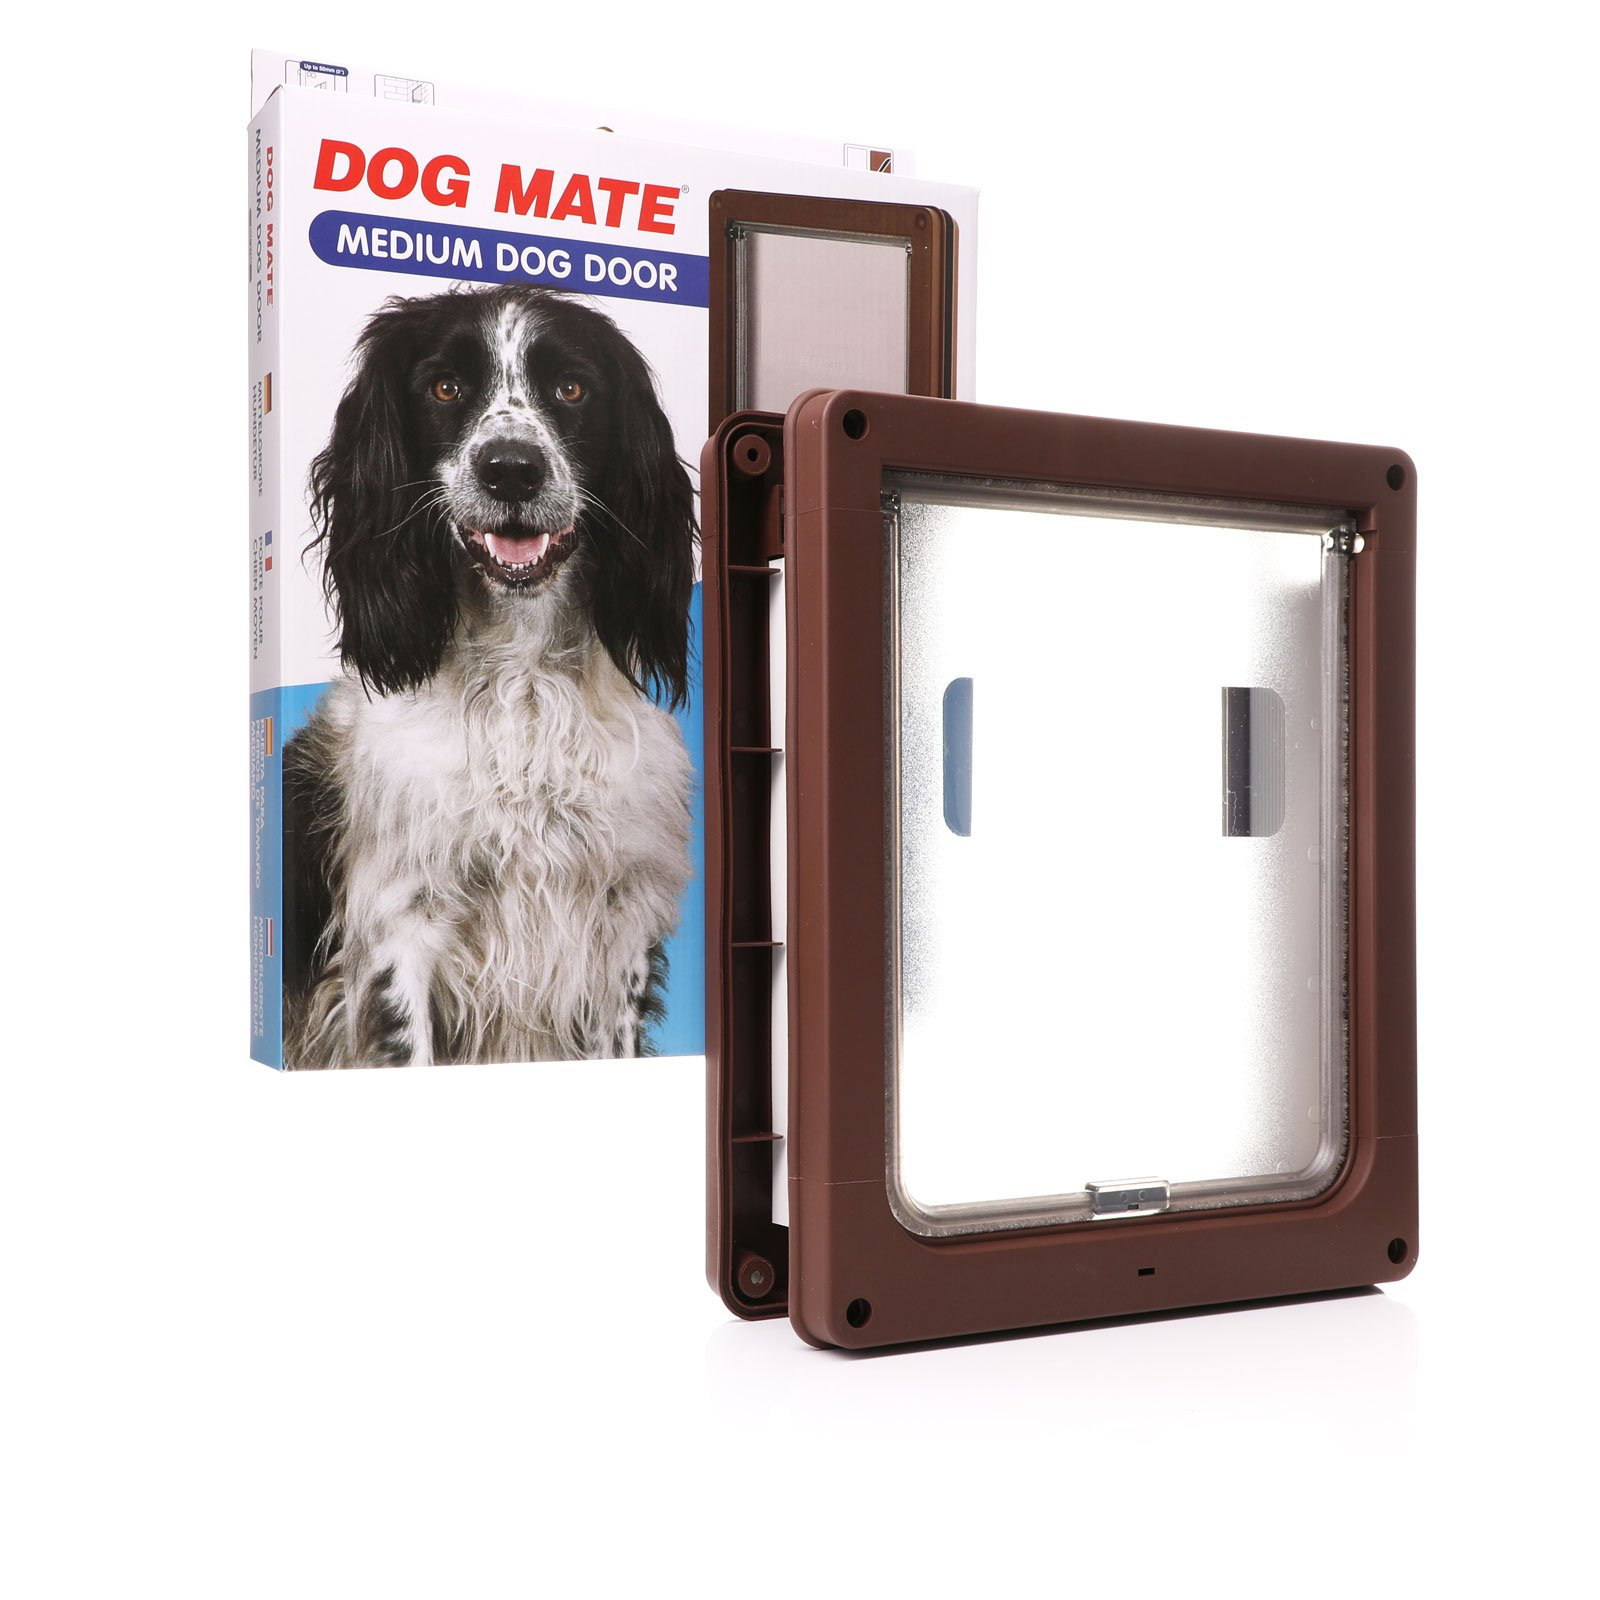 Medium small dog door with abrown frame and a clear flap.